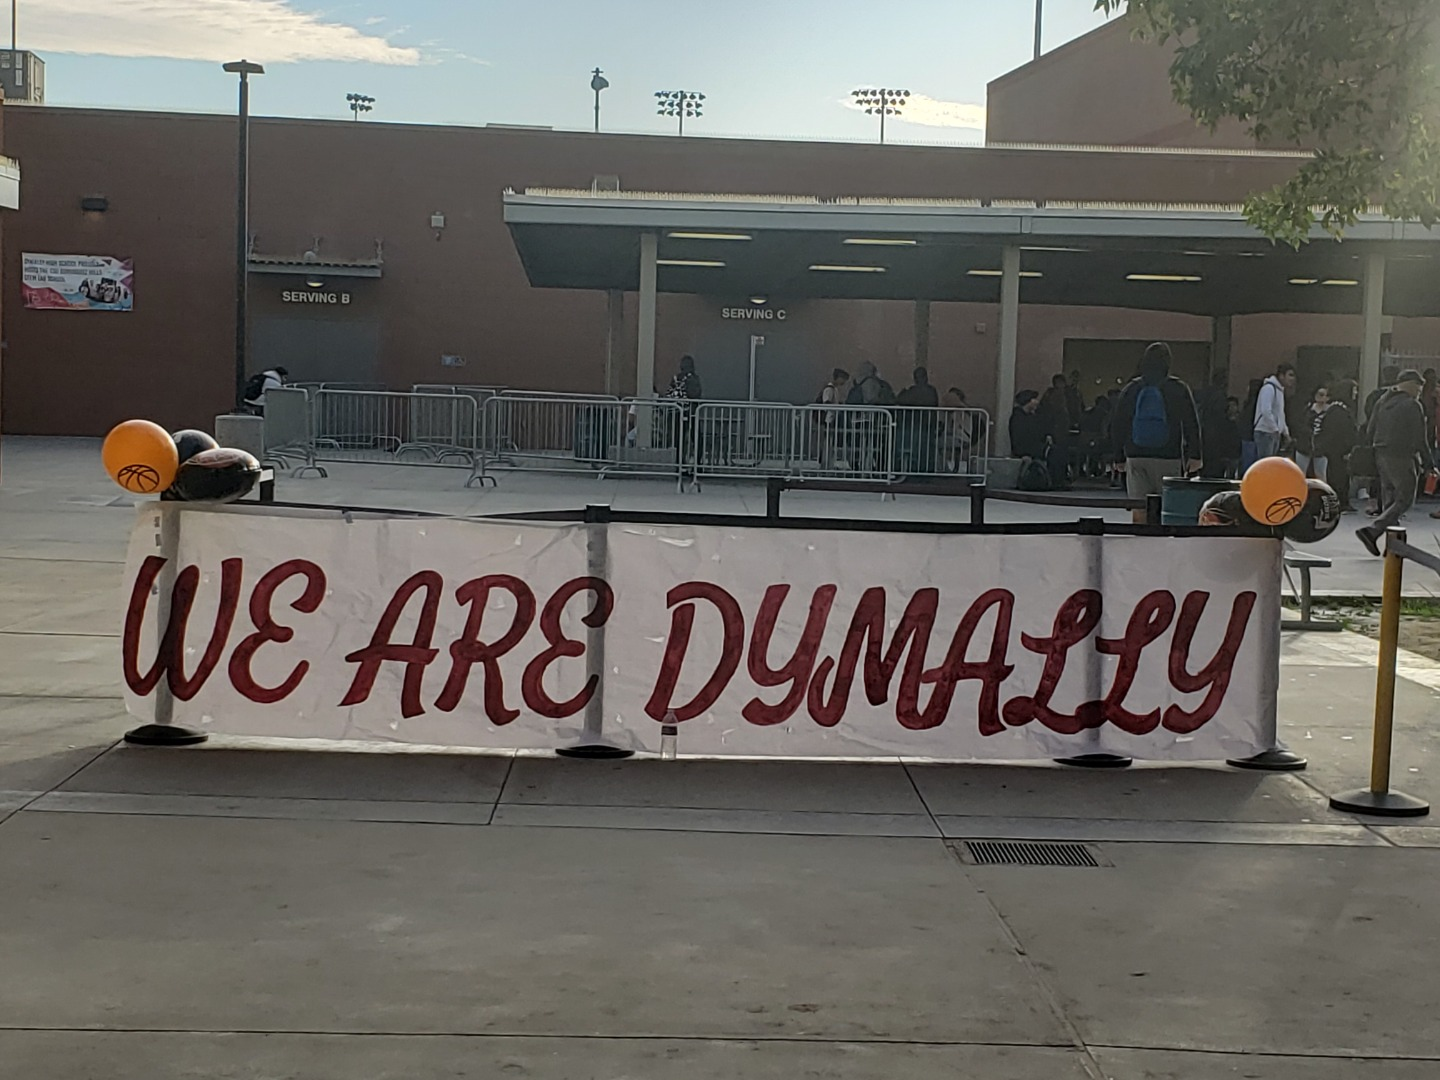 We are Dymally